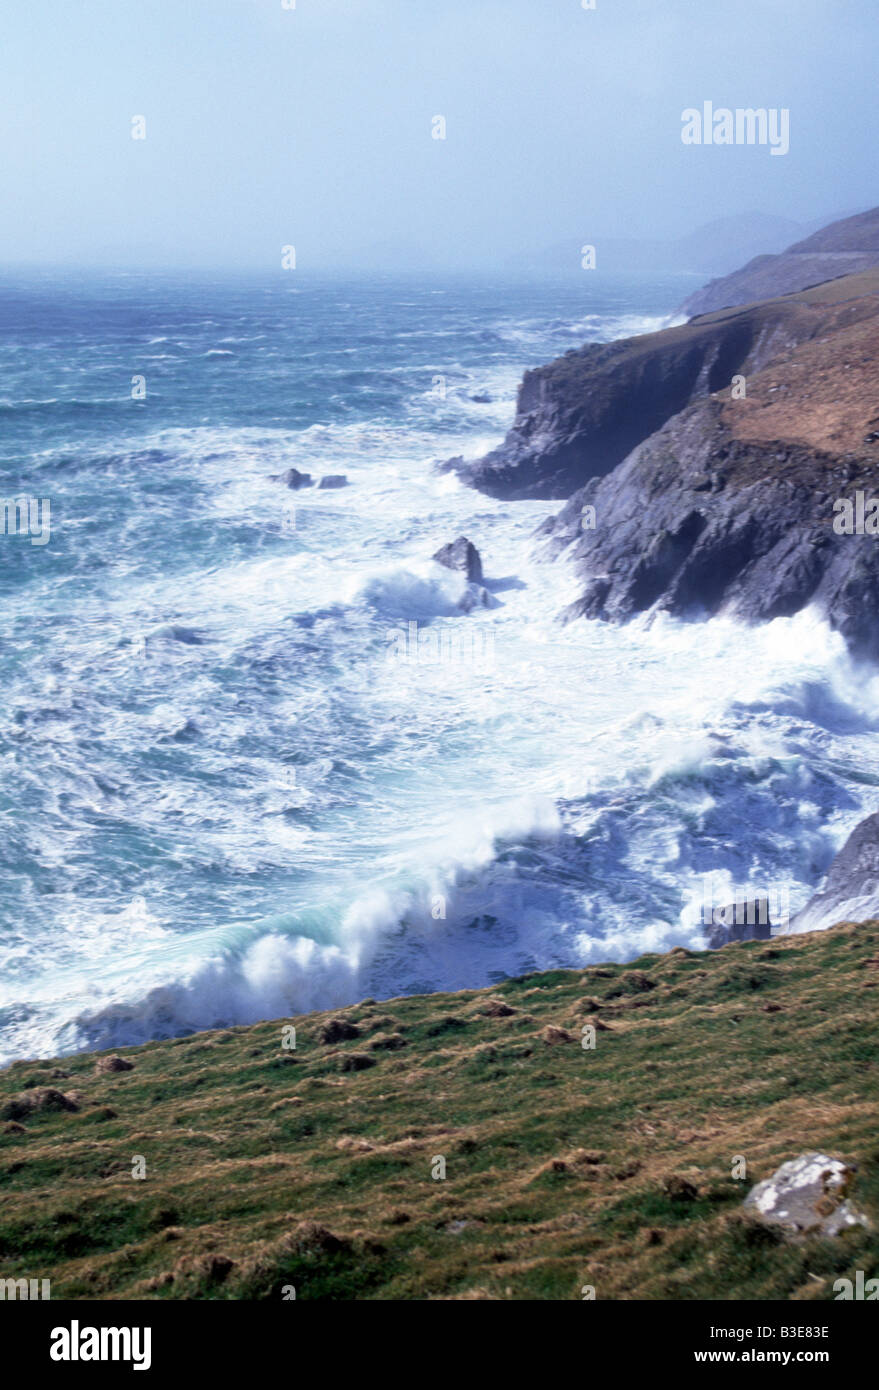 storm force seas lashing irelands atlantic coast Stock Photo